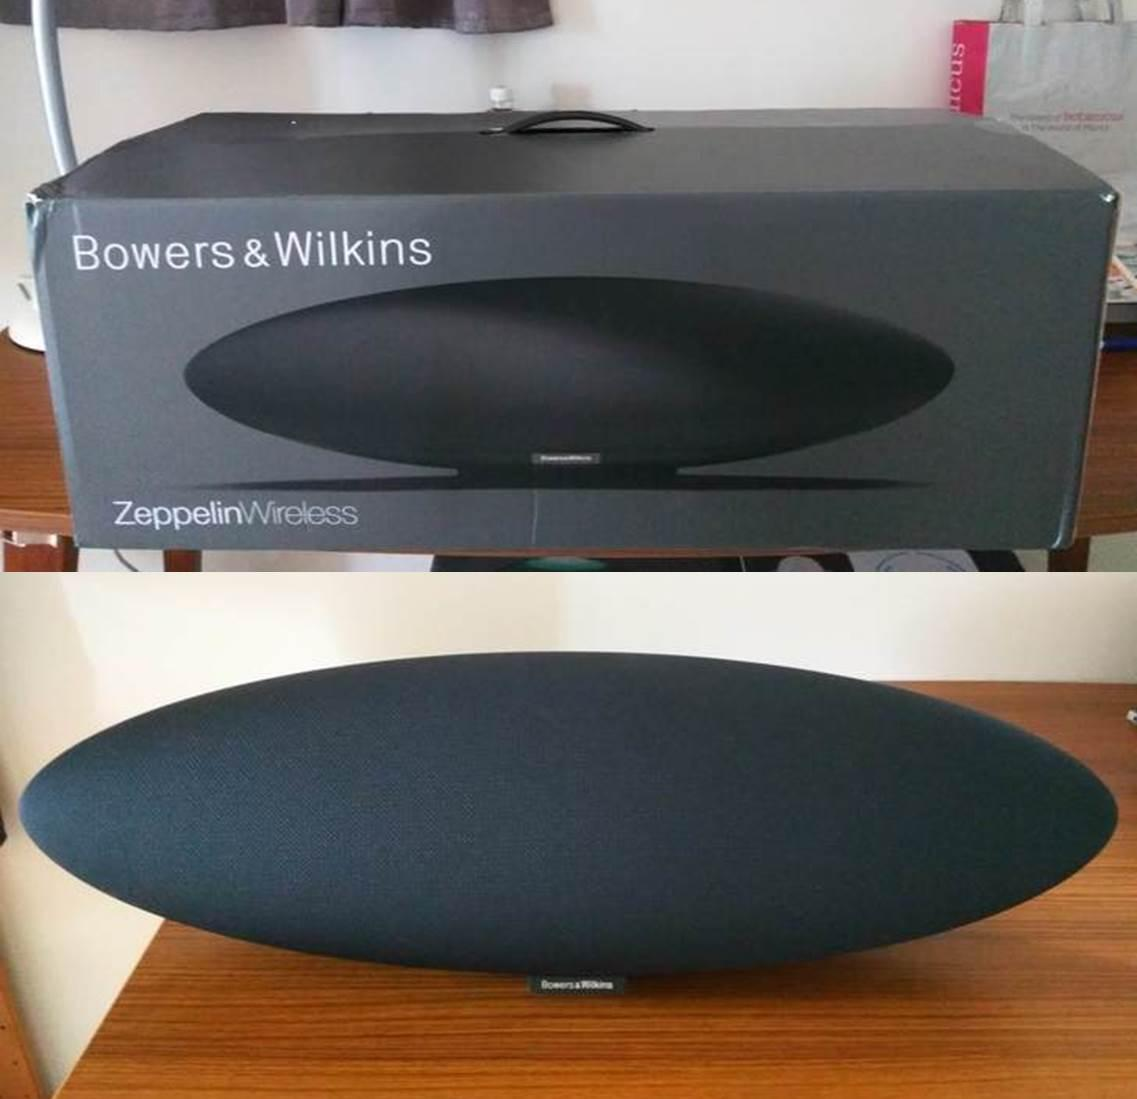 ✌T客邦好聲音鑑賞會✌Bowers & Wilkins Zeppelin Wireless 最終5強試用報告登場! - XFastest - 1